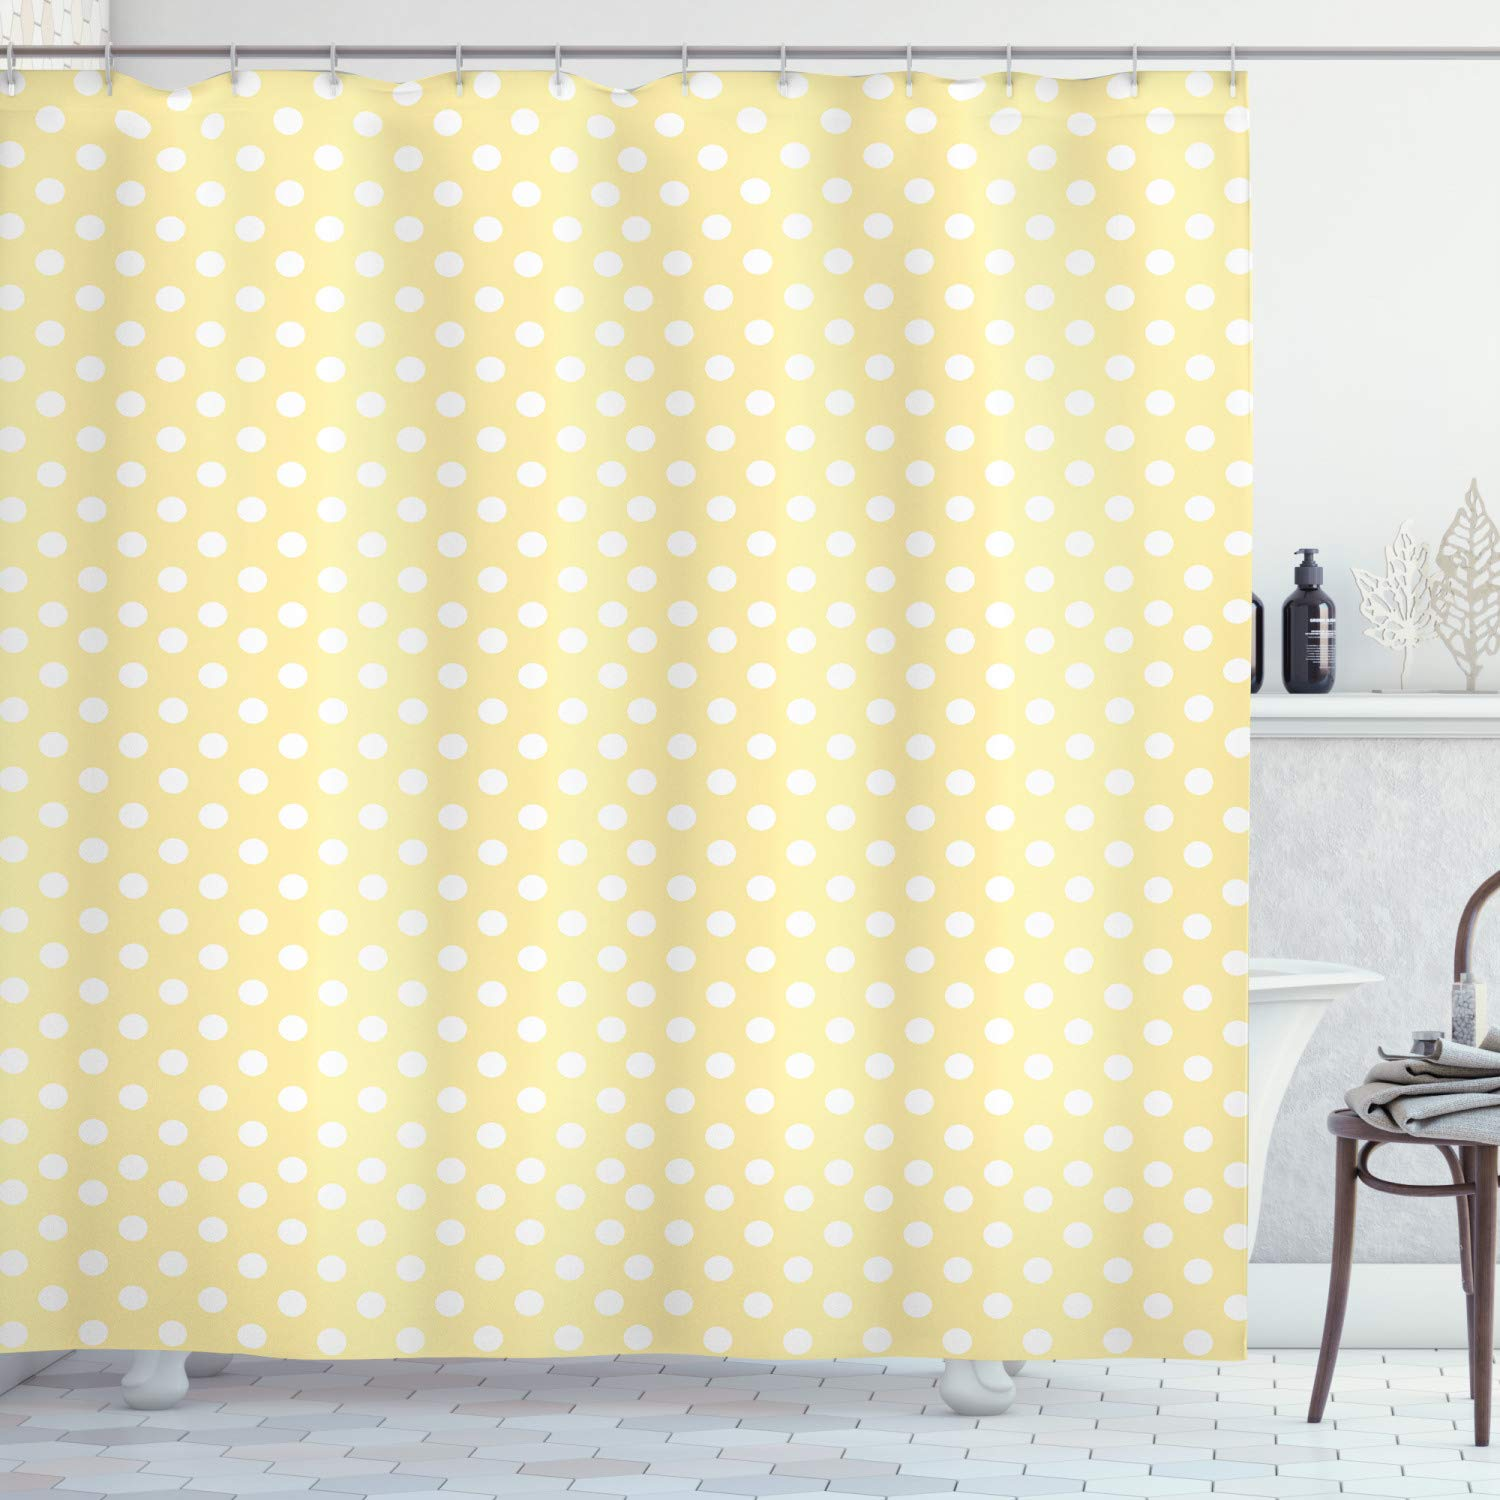 """Ambesonne Polka Dots Shower Curtain, Nostalgic Pastel Polka Dots in Never Ending Path Vintage Old-Fashion Artwork, Cloth Fabric Bathroom Decor Set with Hooks, 75"""" Long, Yellow White"""